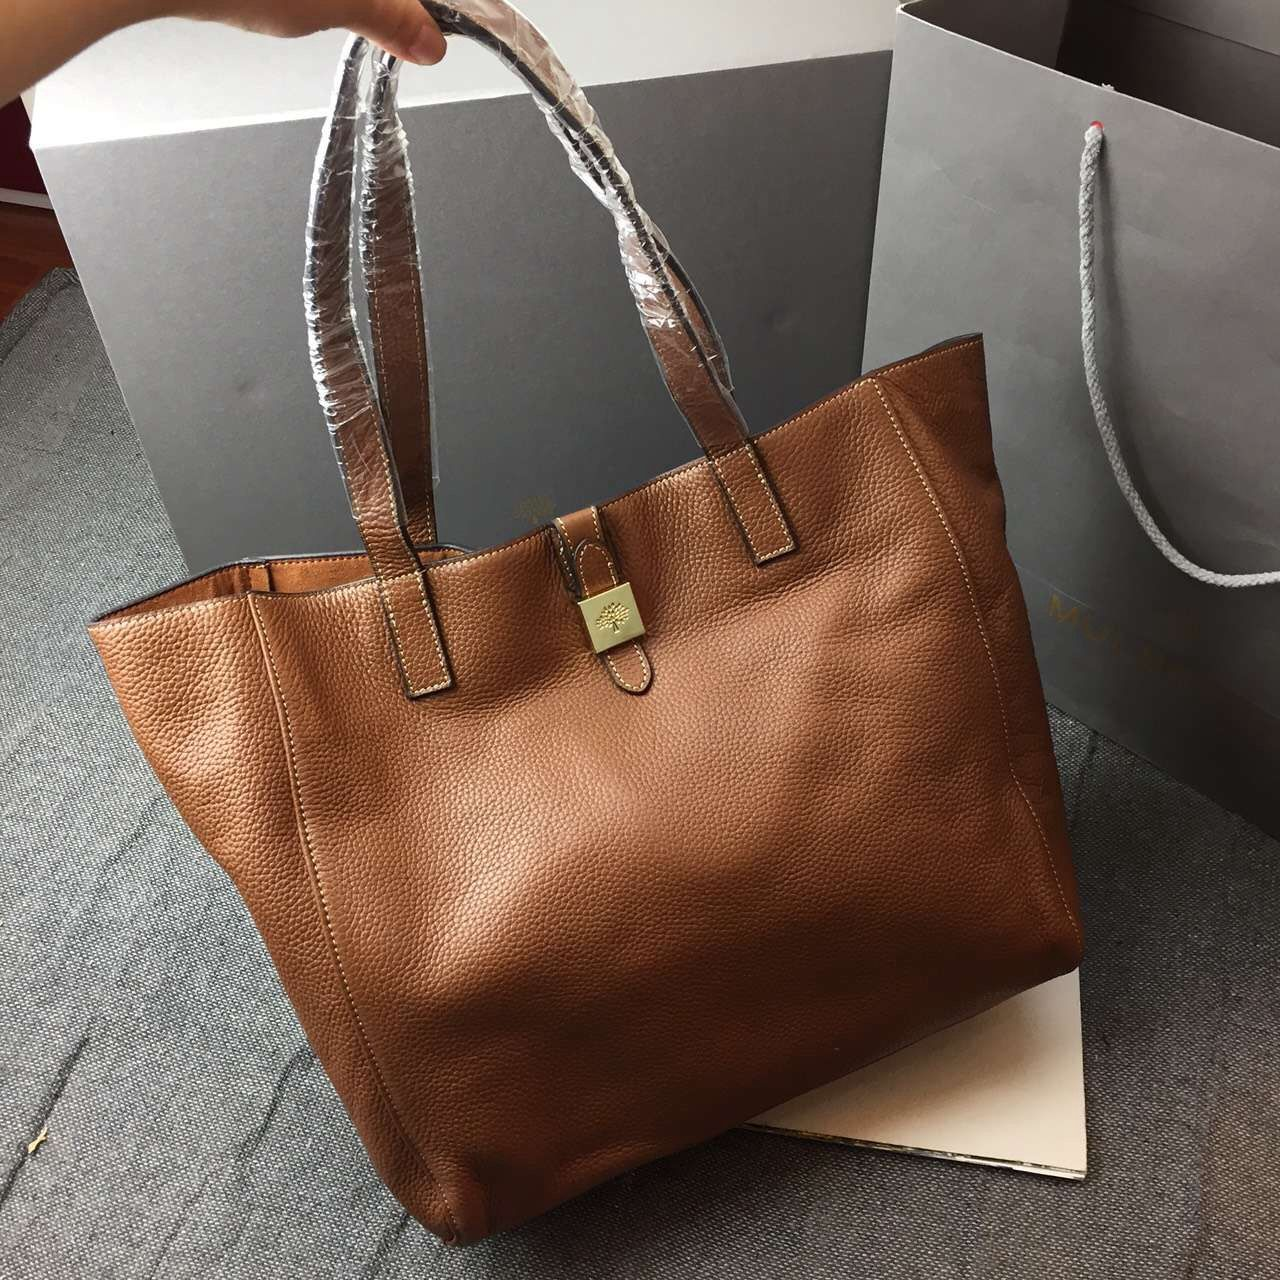 27c8fe7580 inexpensive lyst mulberry tessie tote bag in brown 35432 77a27; official mulberry  tessie tote 9cdf2 6264e